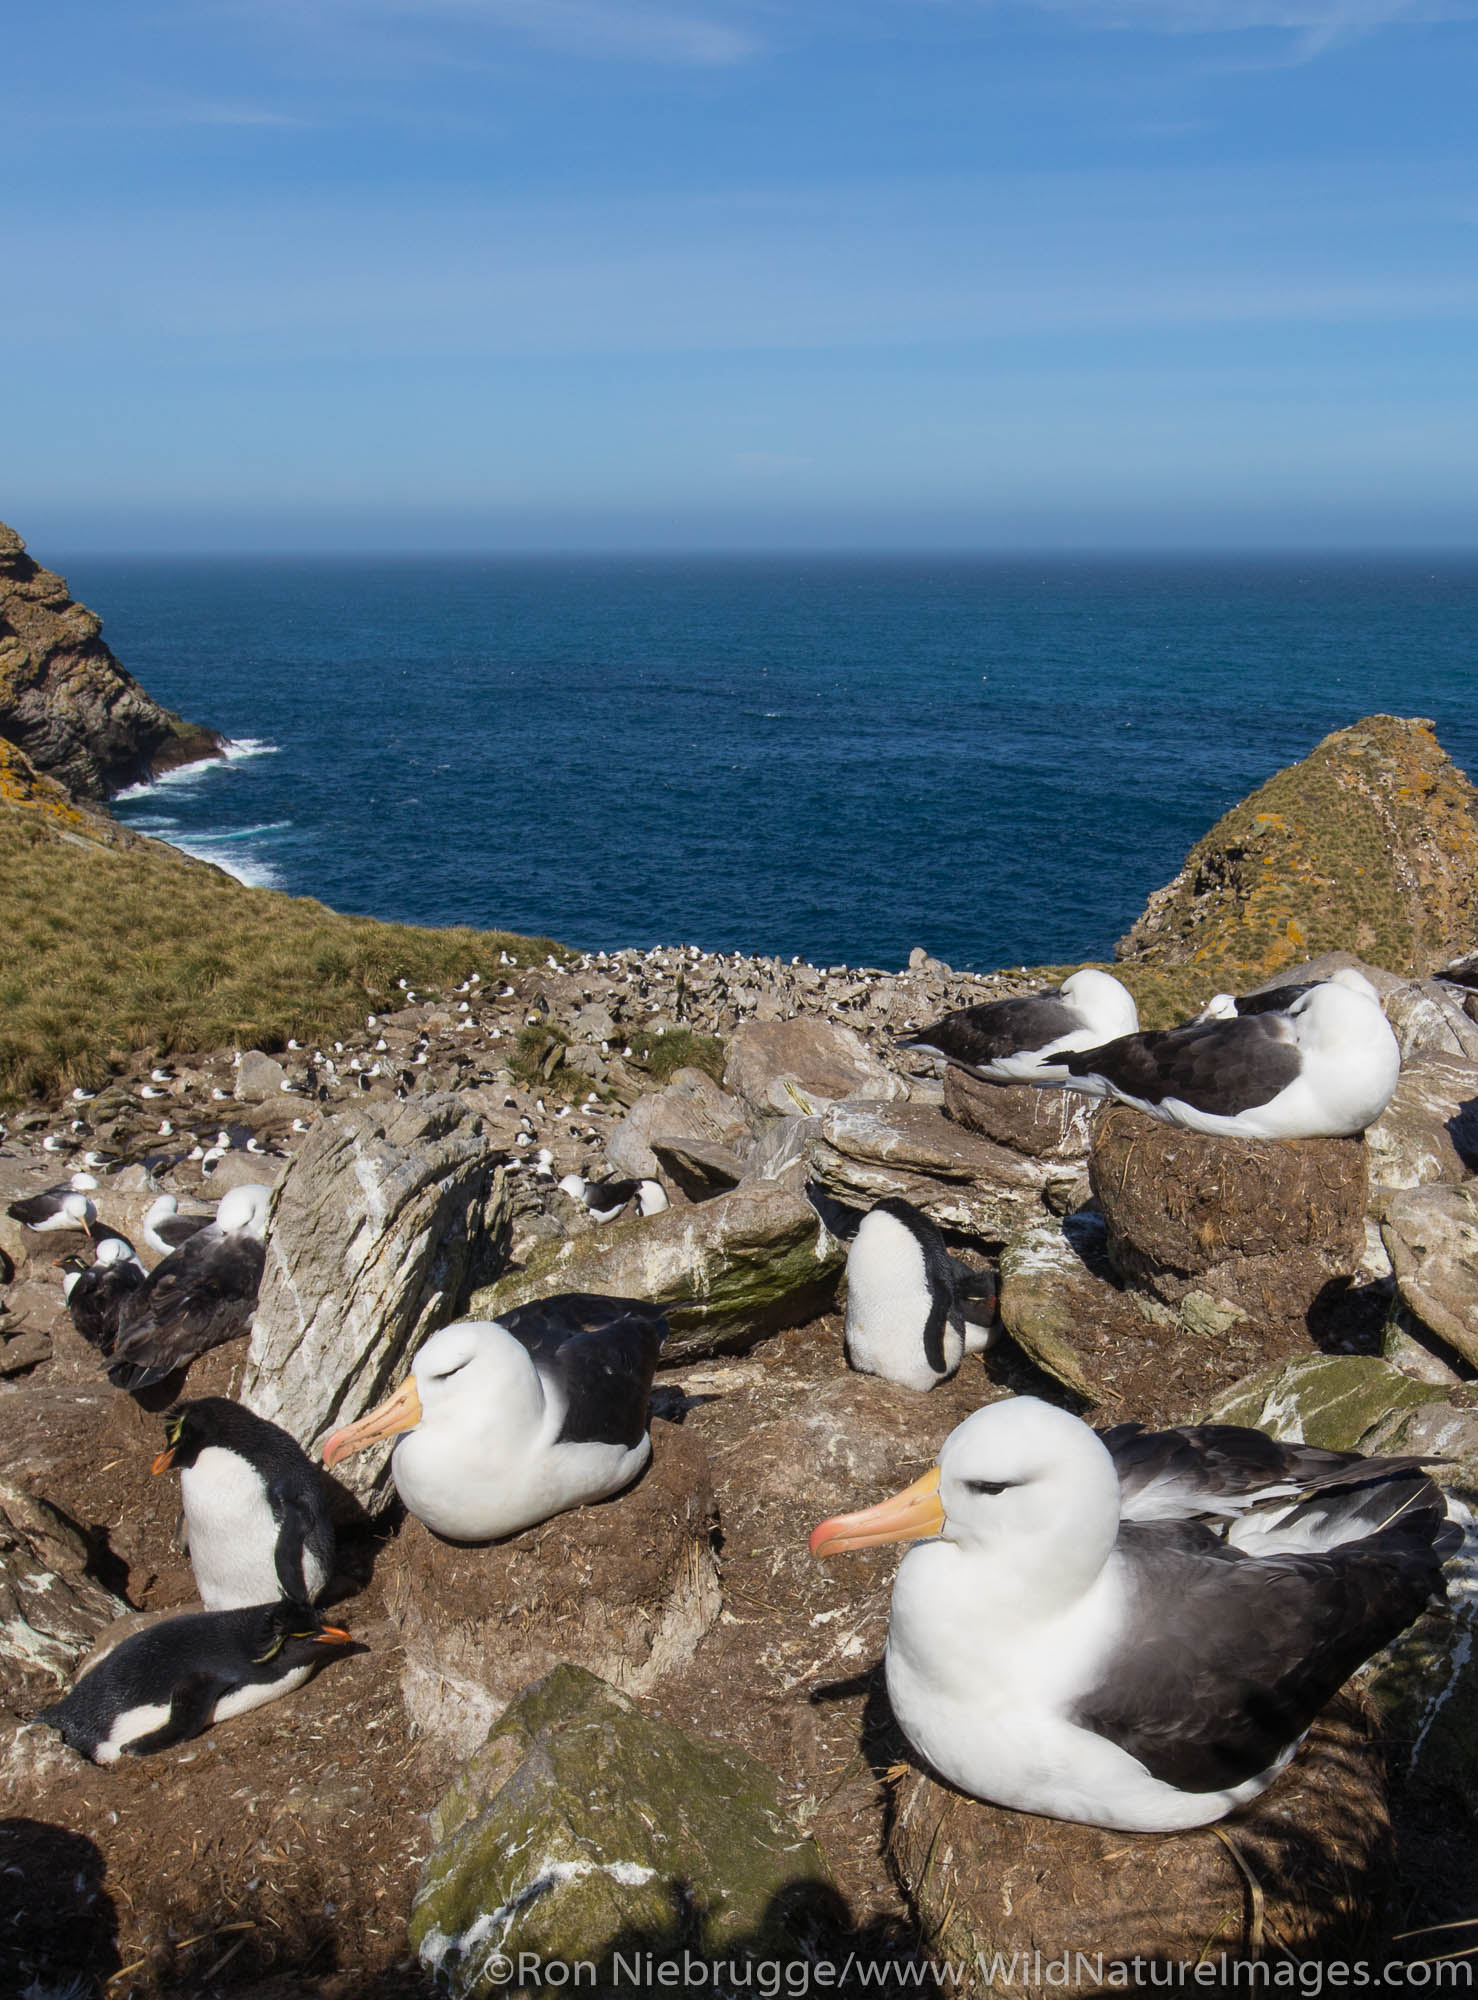 Black-browed Albatross and Rockhopper Penguins, West Point Island, Falkland Islands.